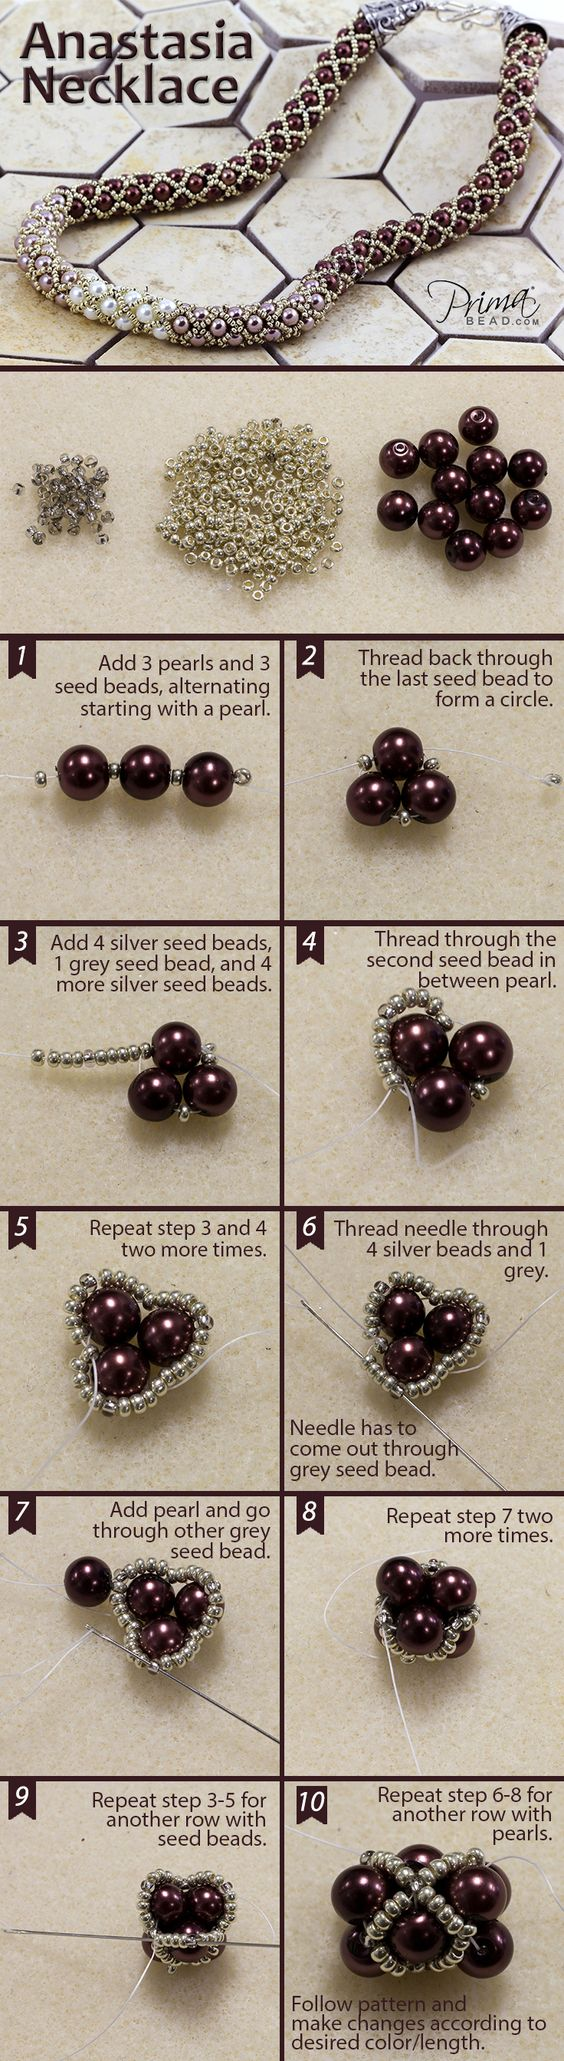 Master this filled tubular netting technique and see our full collection of bead weaving patterns! #DIY #jewelry #beads #beadweaving #seedbeads #project: